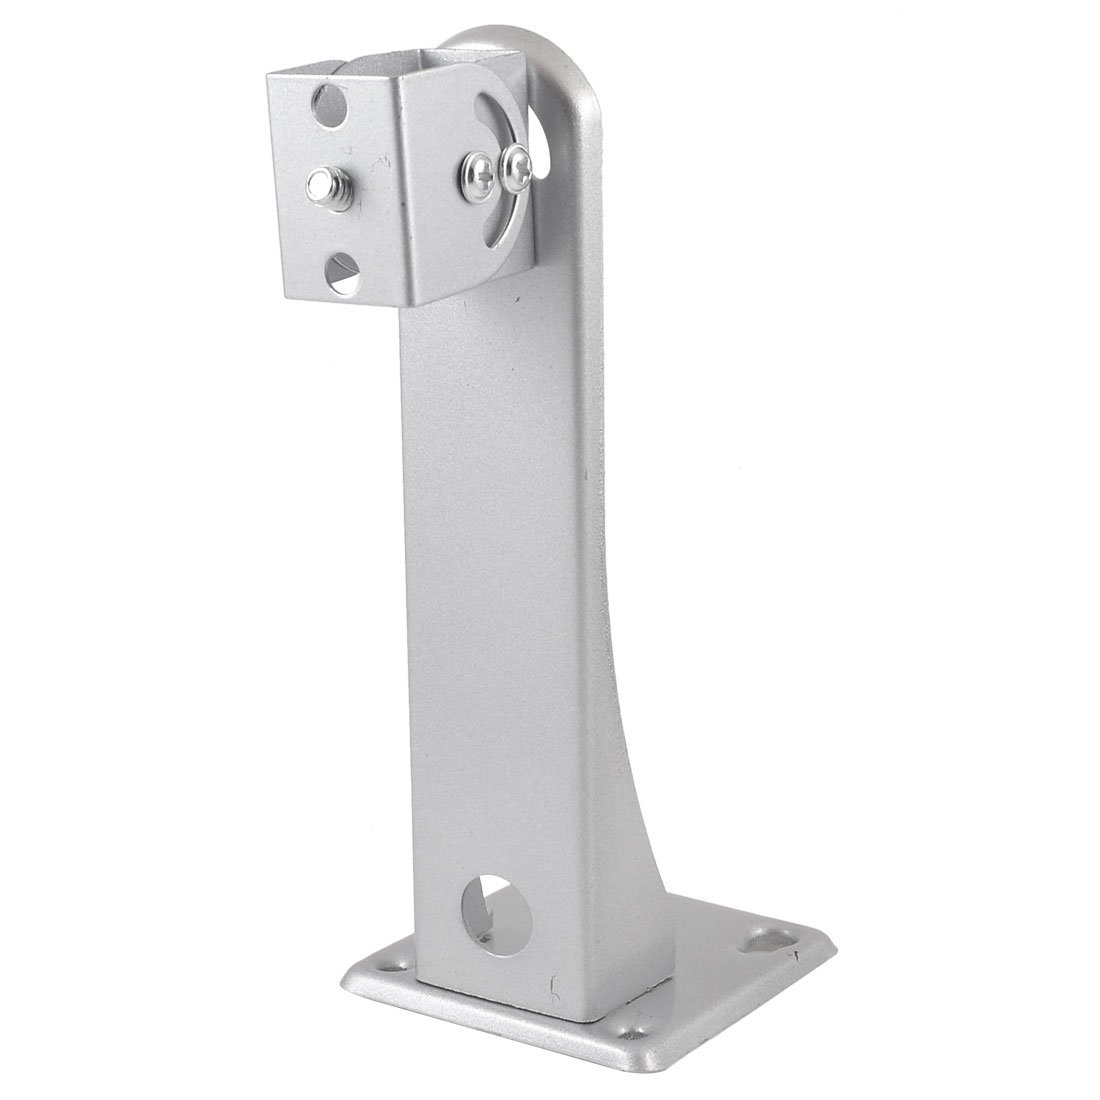 Base diameter 6.5cm High Metal Wall Ceiling Mount Stand Bracket for CCTV Camera free shipping 10 pieces cctv accessories camera bracket metal wall mount bracket for cctv camera wall mount bracket 03